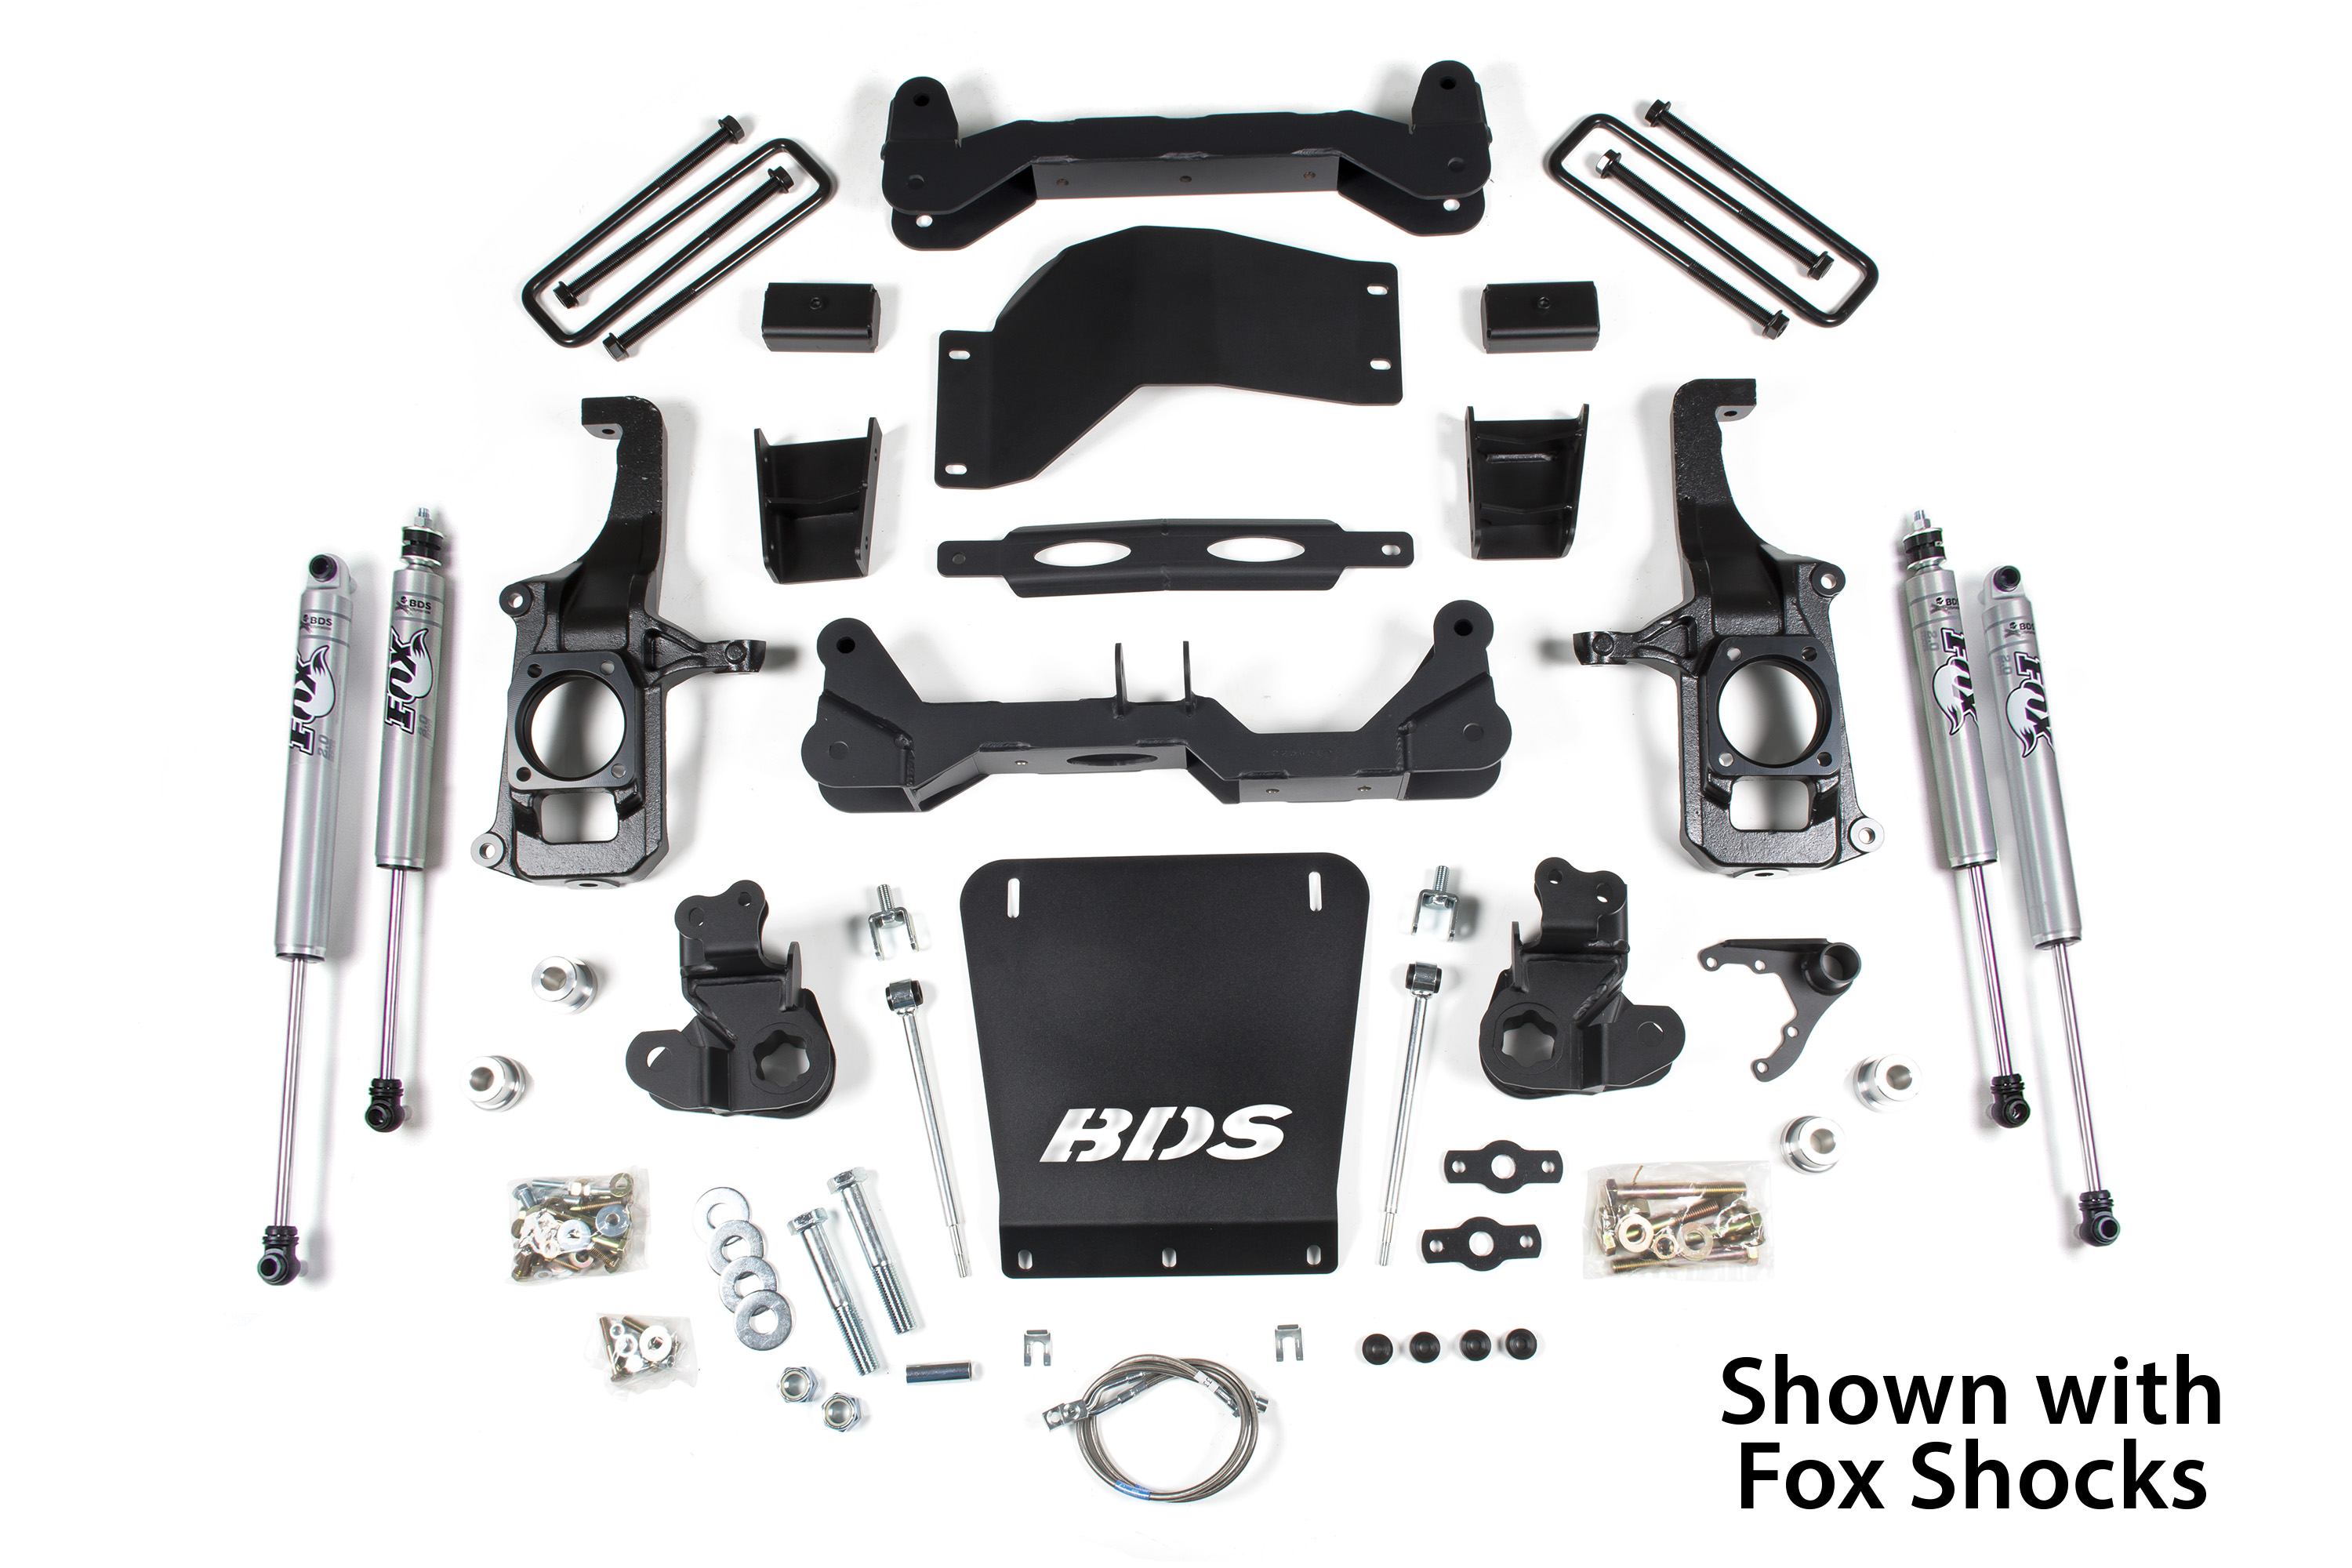 BDS Suspension 2016 Chevy/GMC 2500HD lift kits